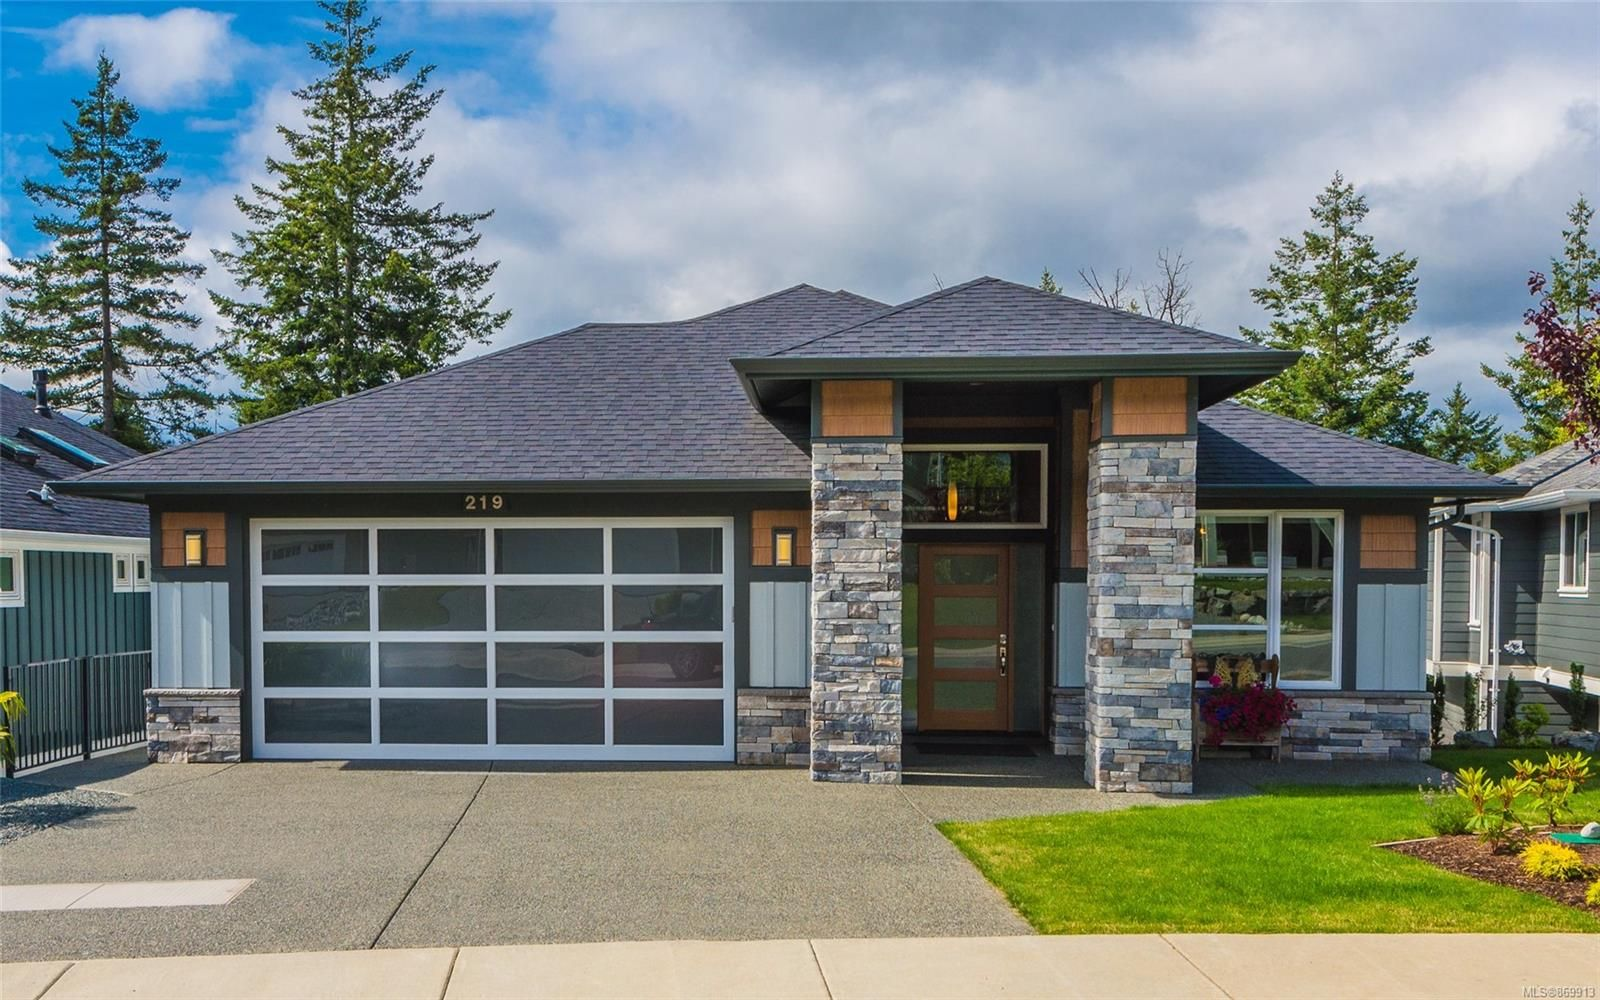 Main Photo: 219 Linstead Pl in : Na North Nanaimo House for sale (Nanaimo)  : MLS®# 869913